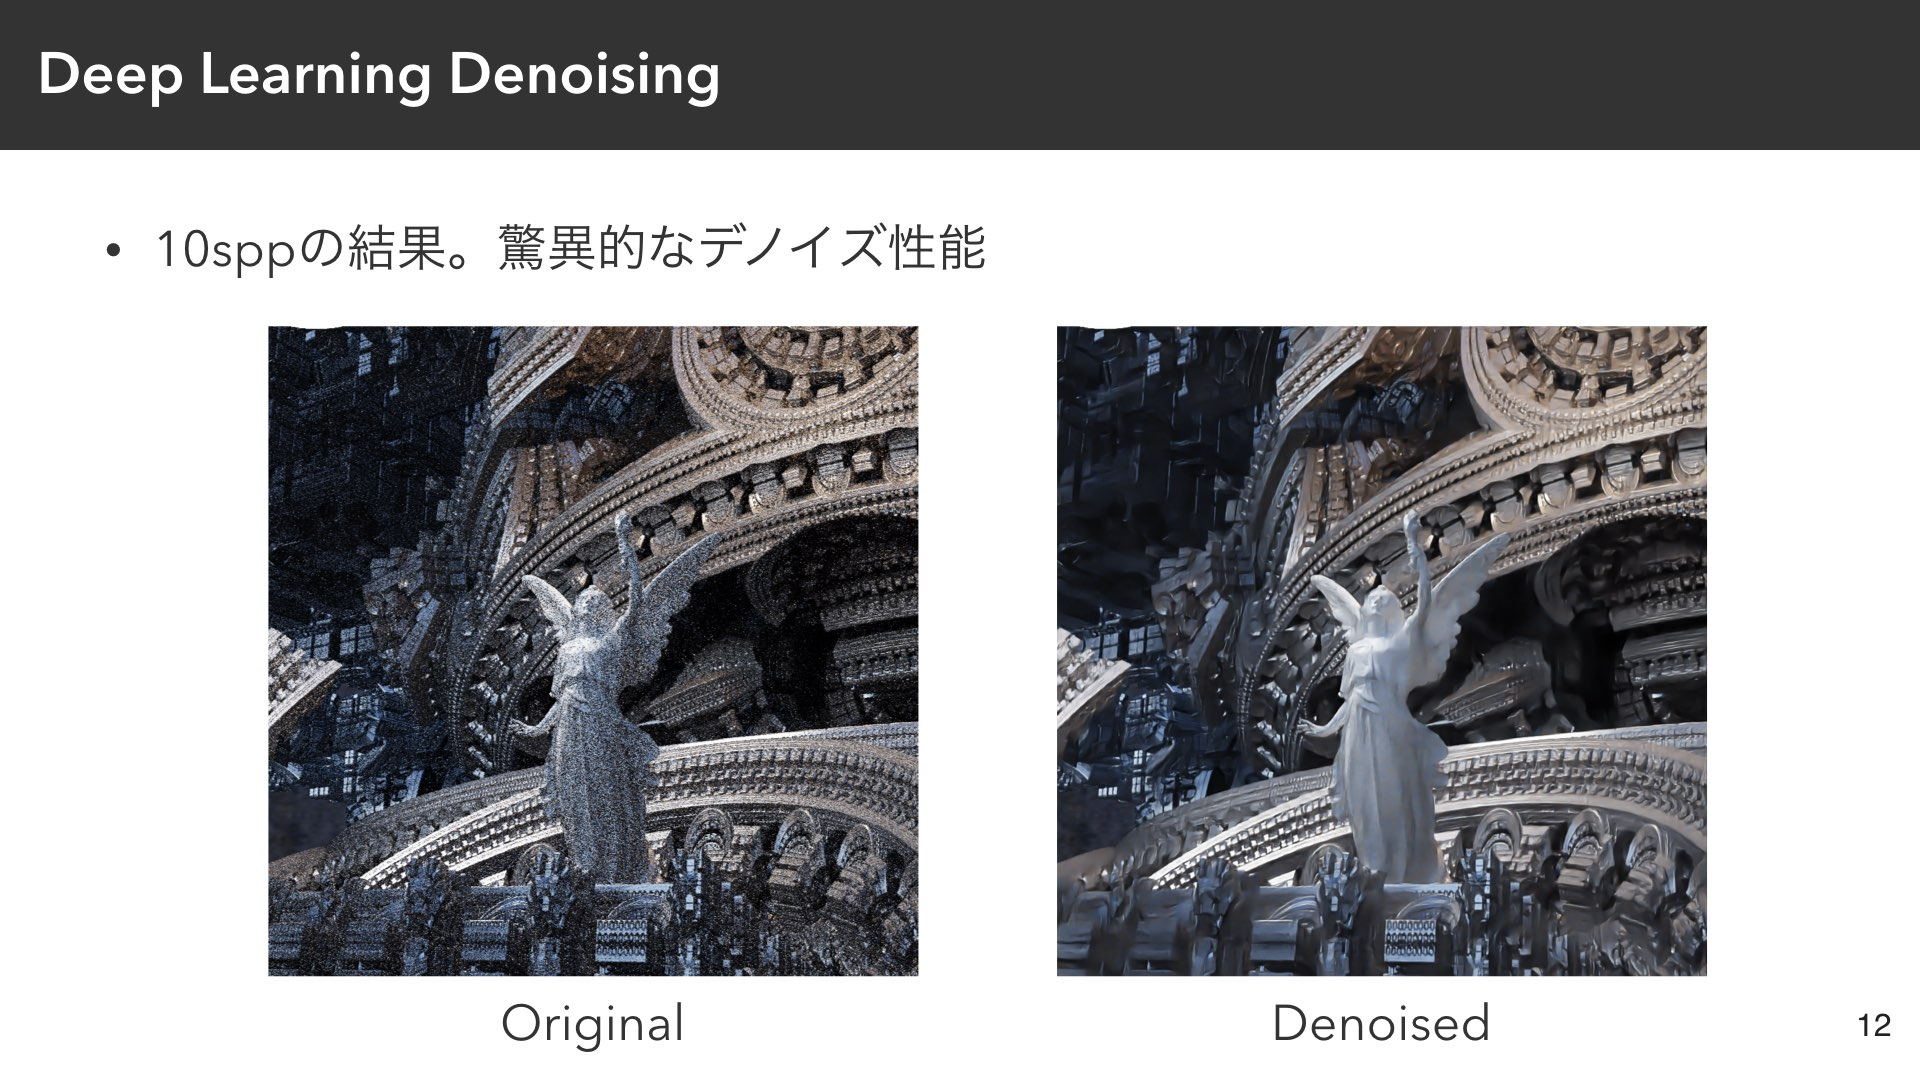 Deep Learning Denoising